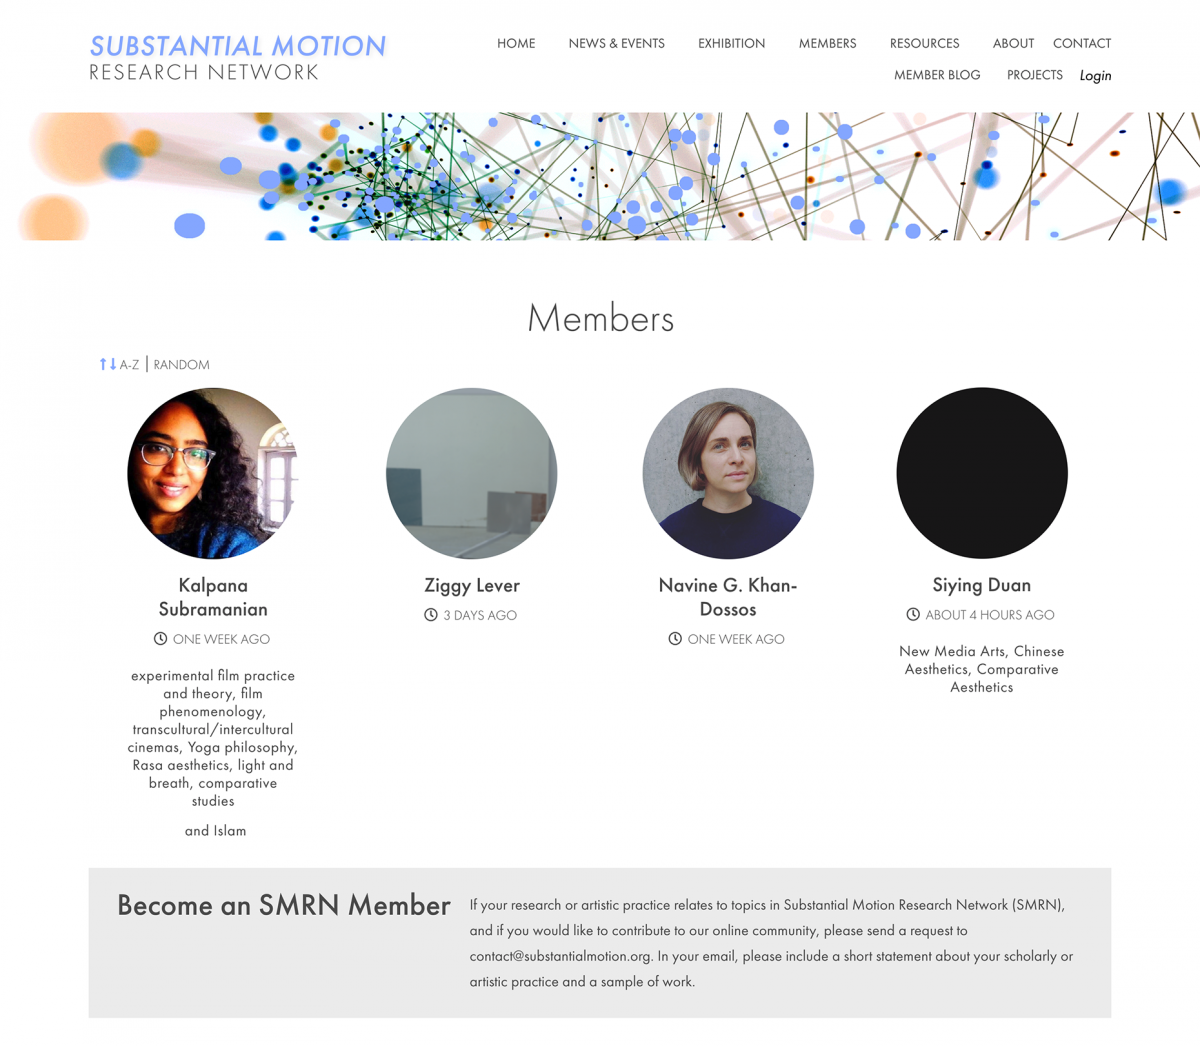 SMRN Member page screenshot